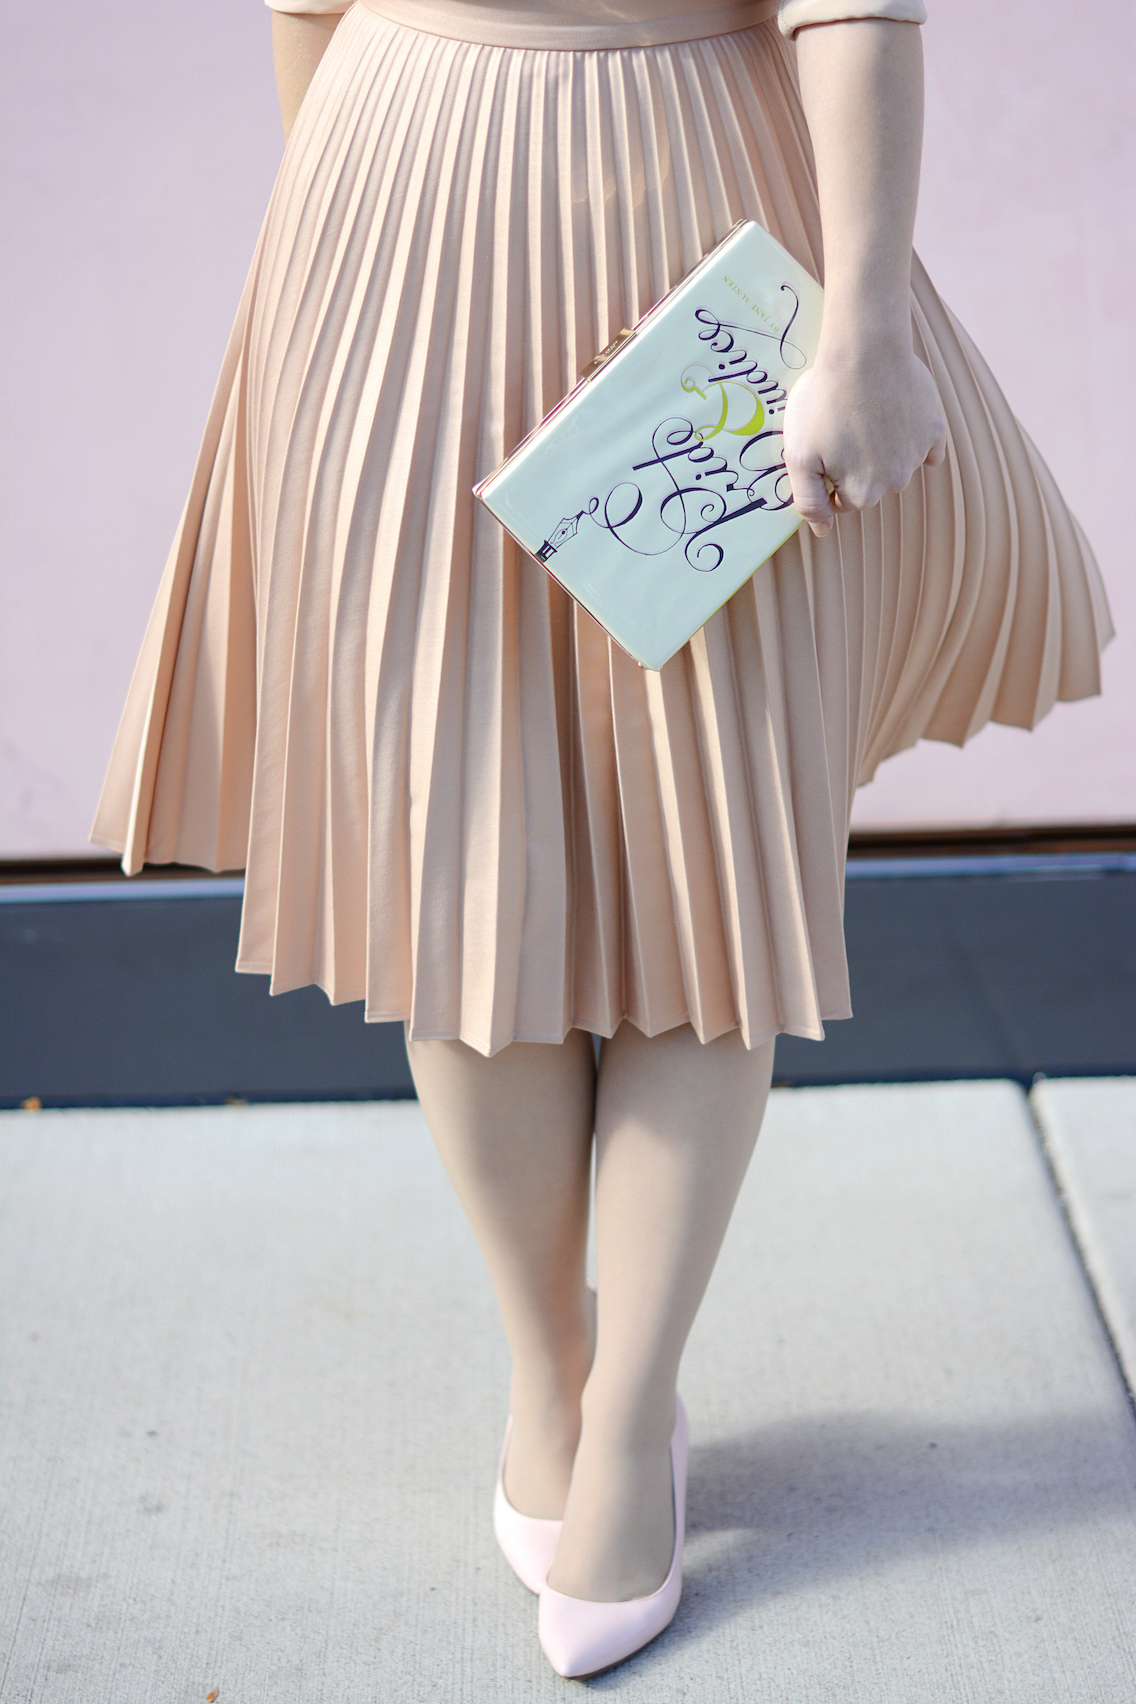 Zara Pleated Skirt Kate Spade Book Clutch Everlane Silk 6